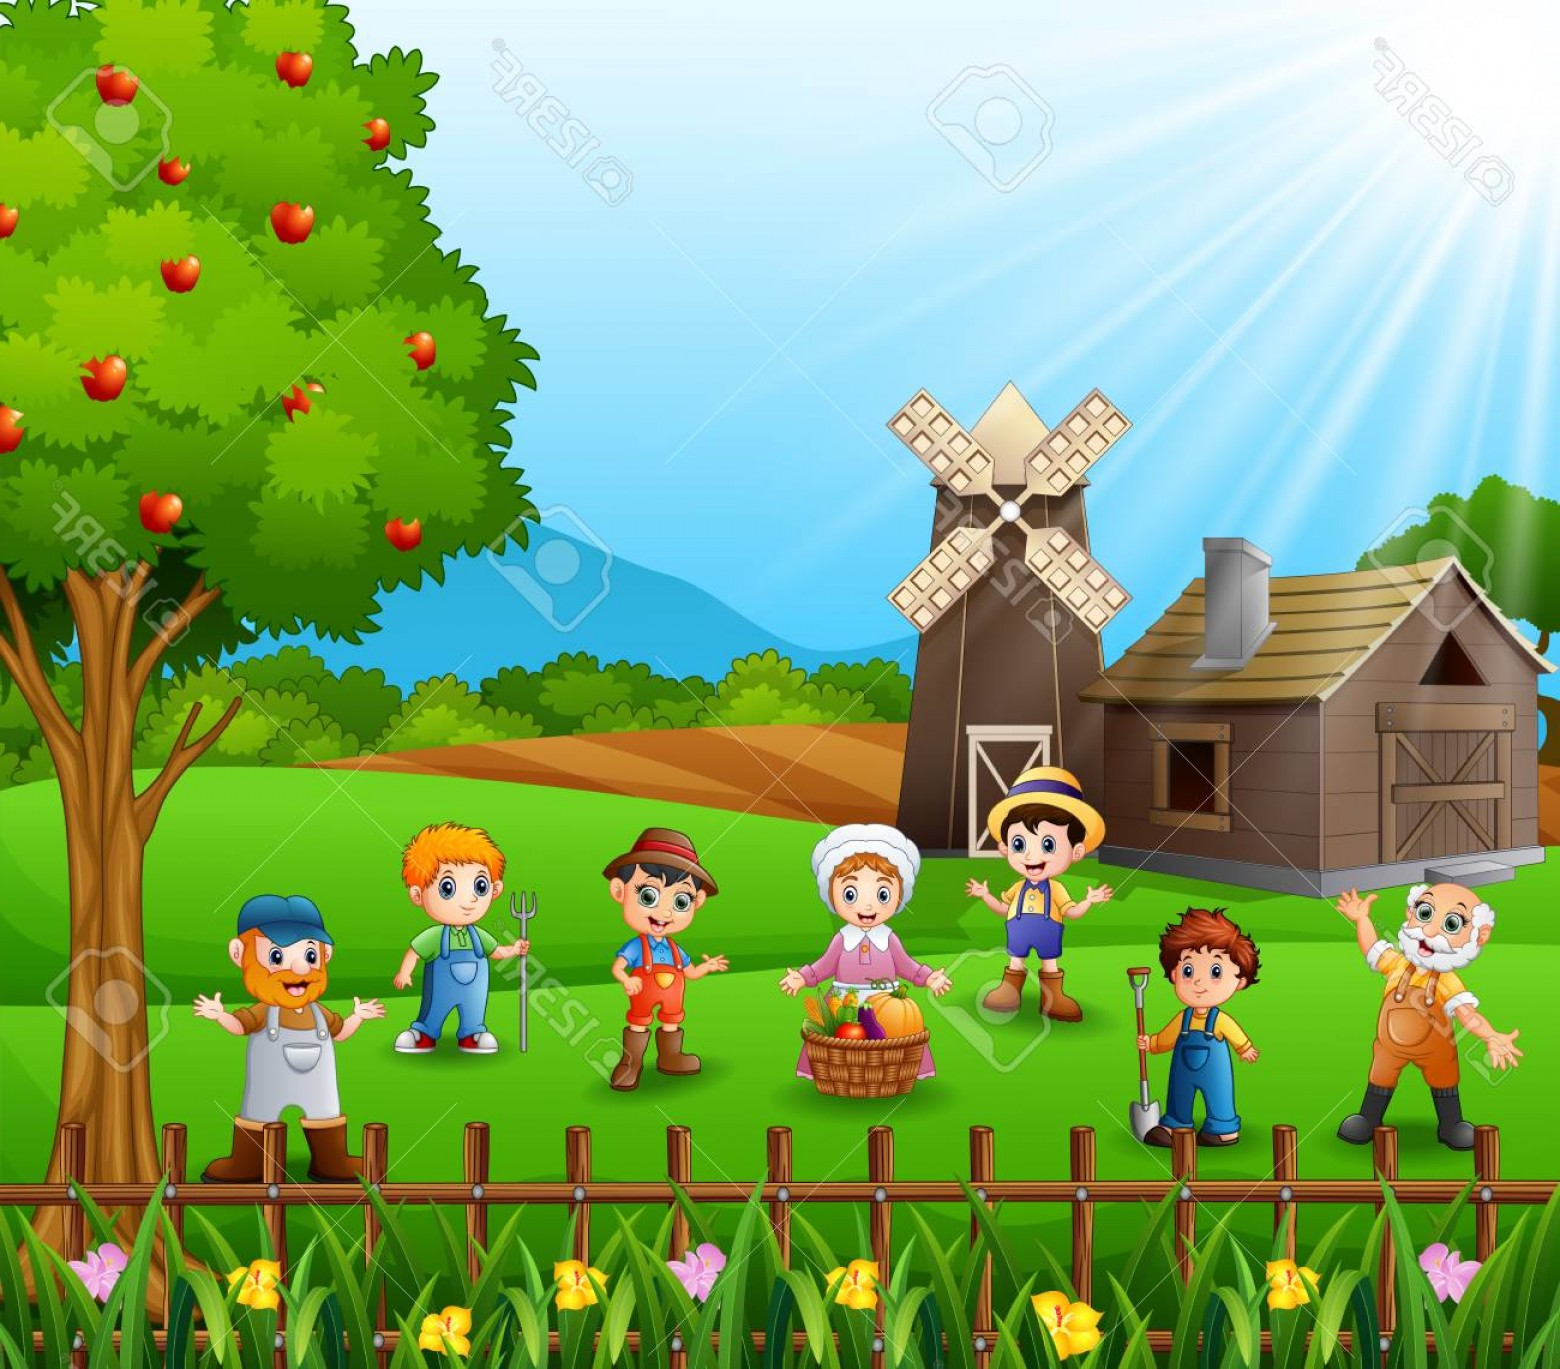 Farm Vector Illustration: Photostock Vector The Farmers Gathered In Farm Vector Illustration